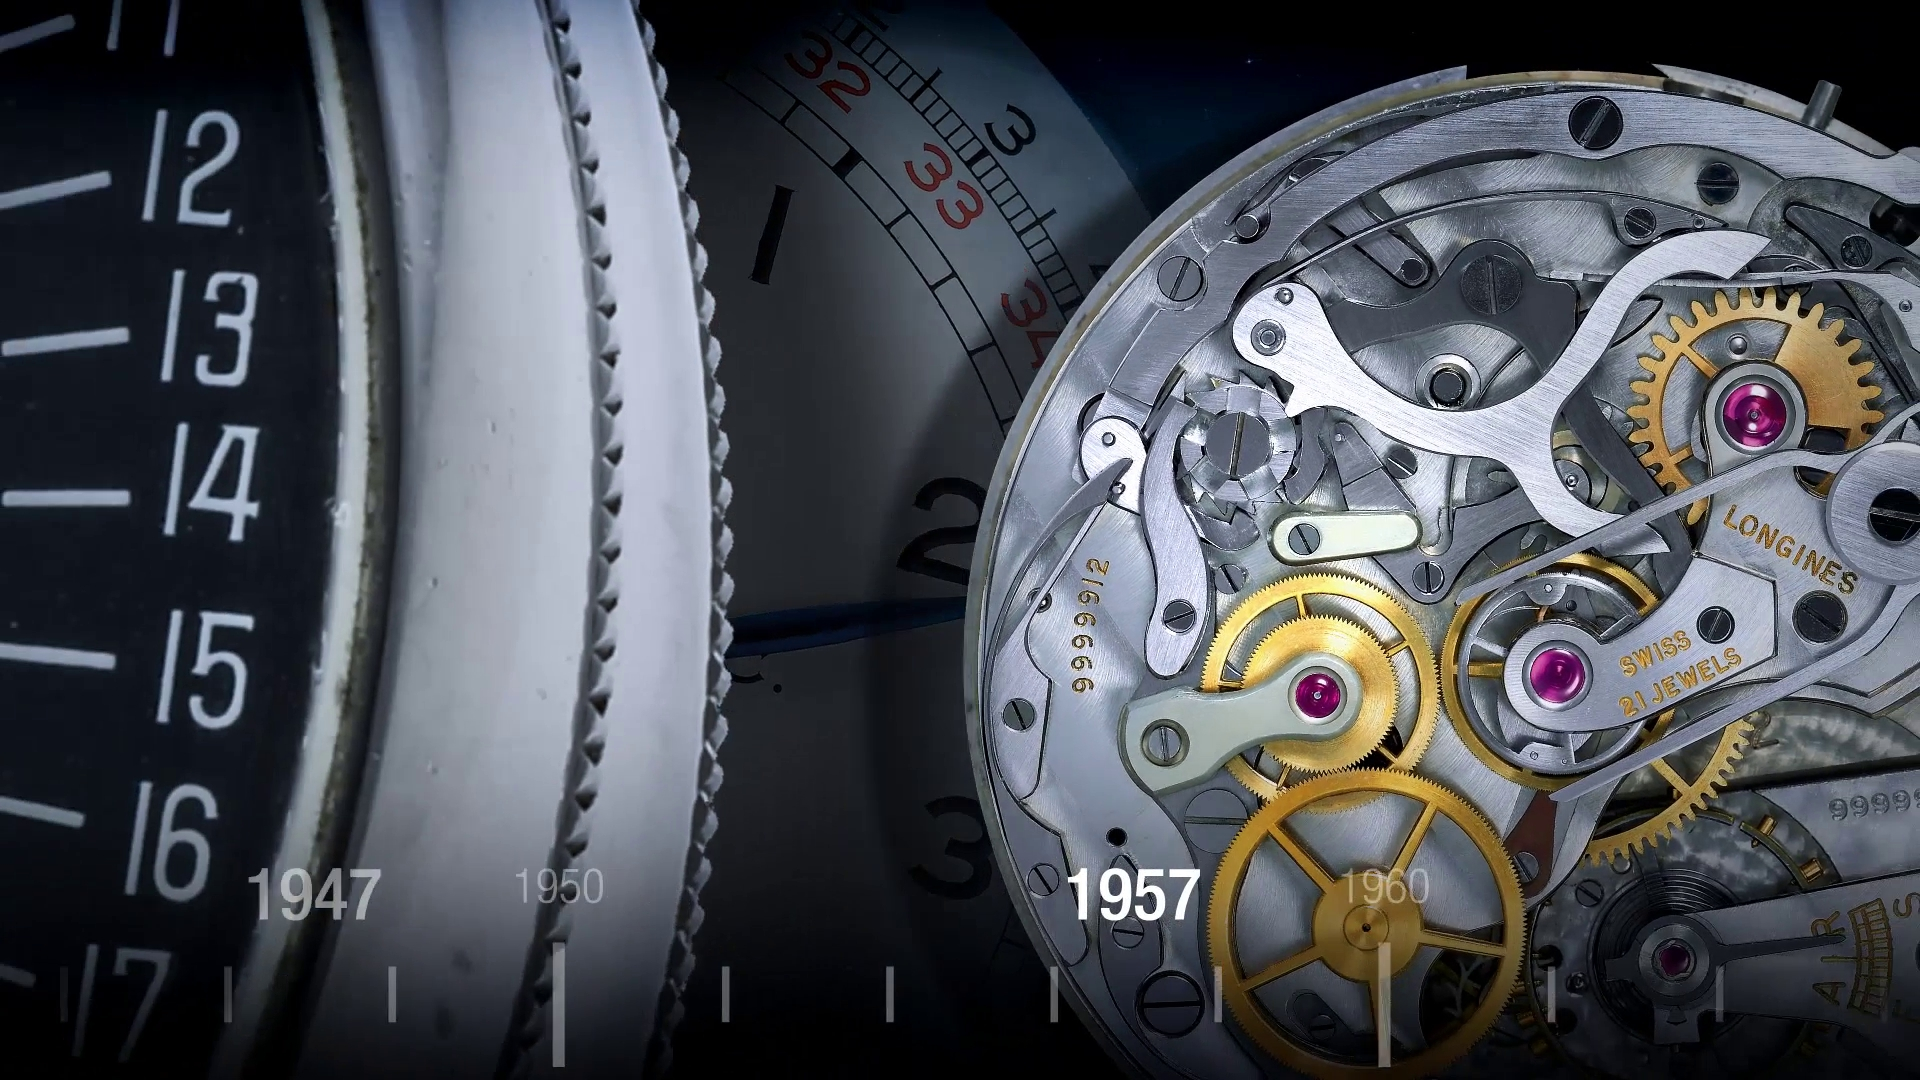 3DVISION NYVALIS 2016 LONGINES Chronograph Tradition 05